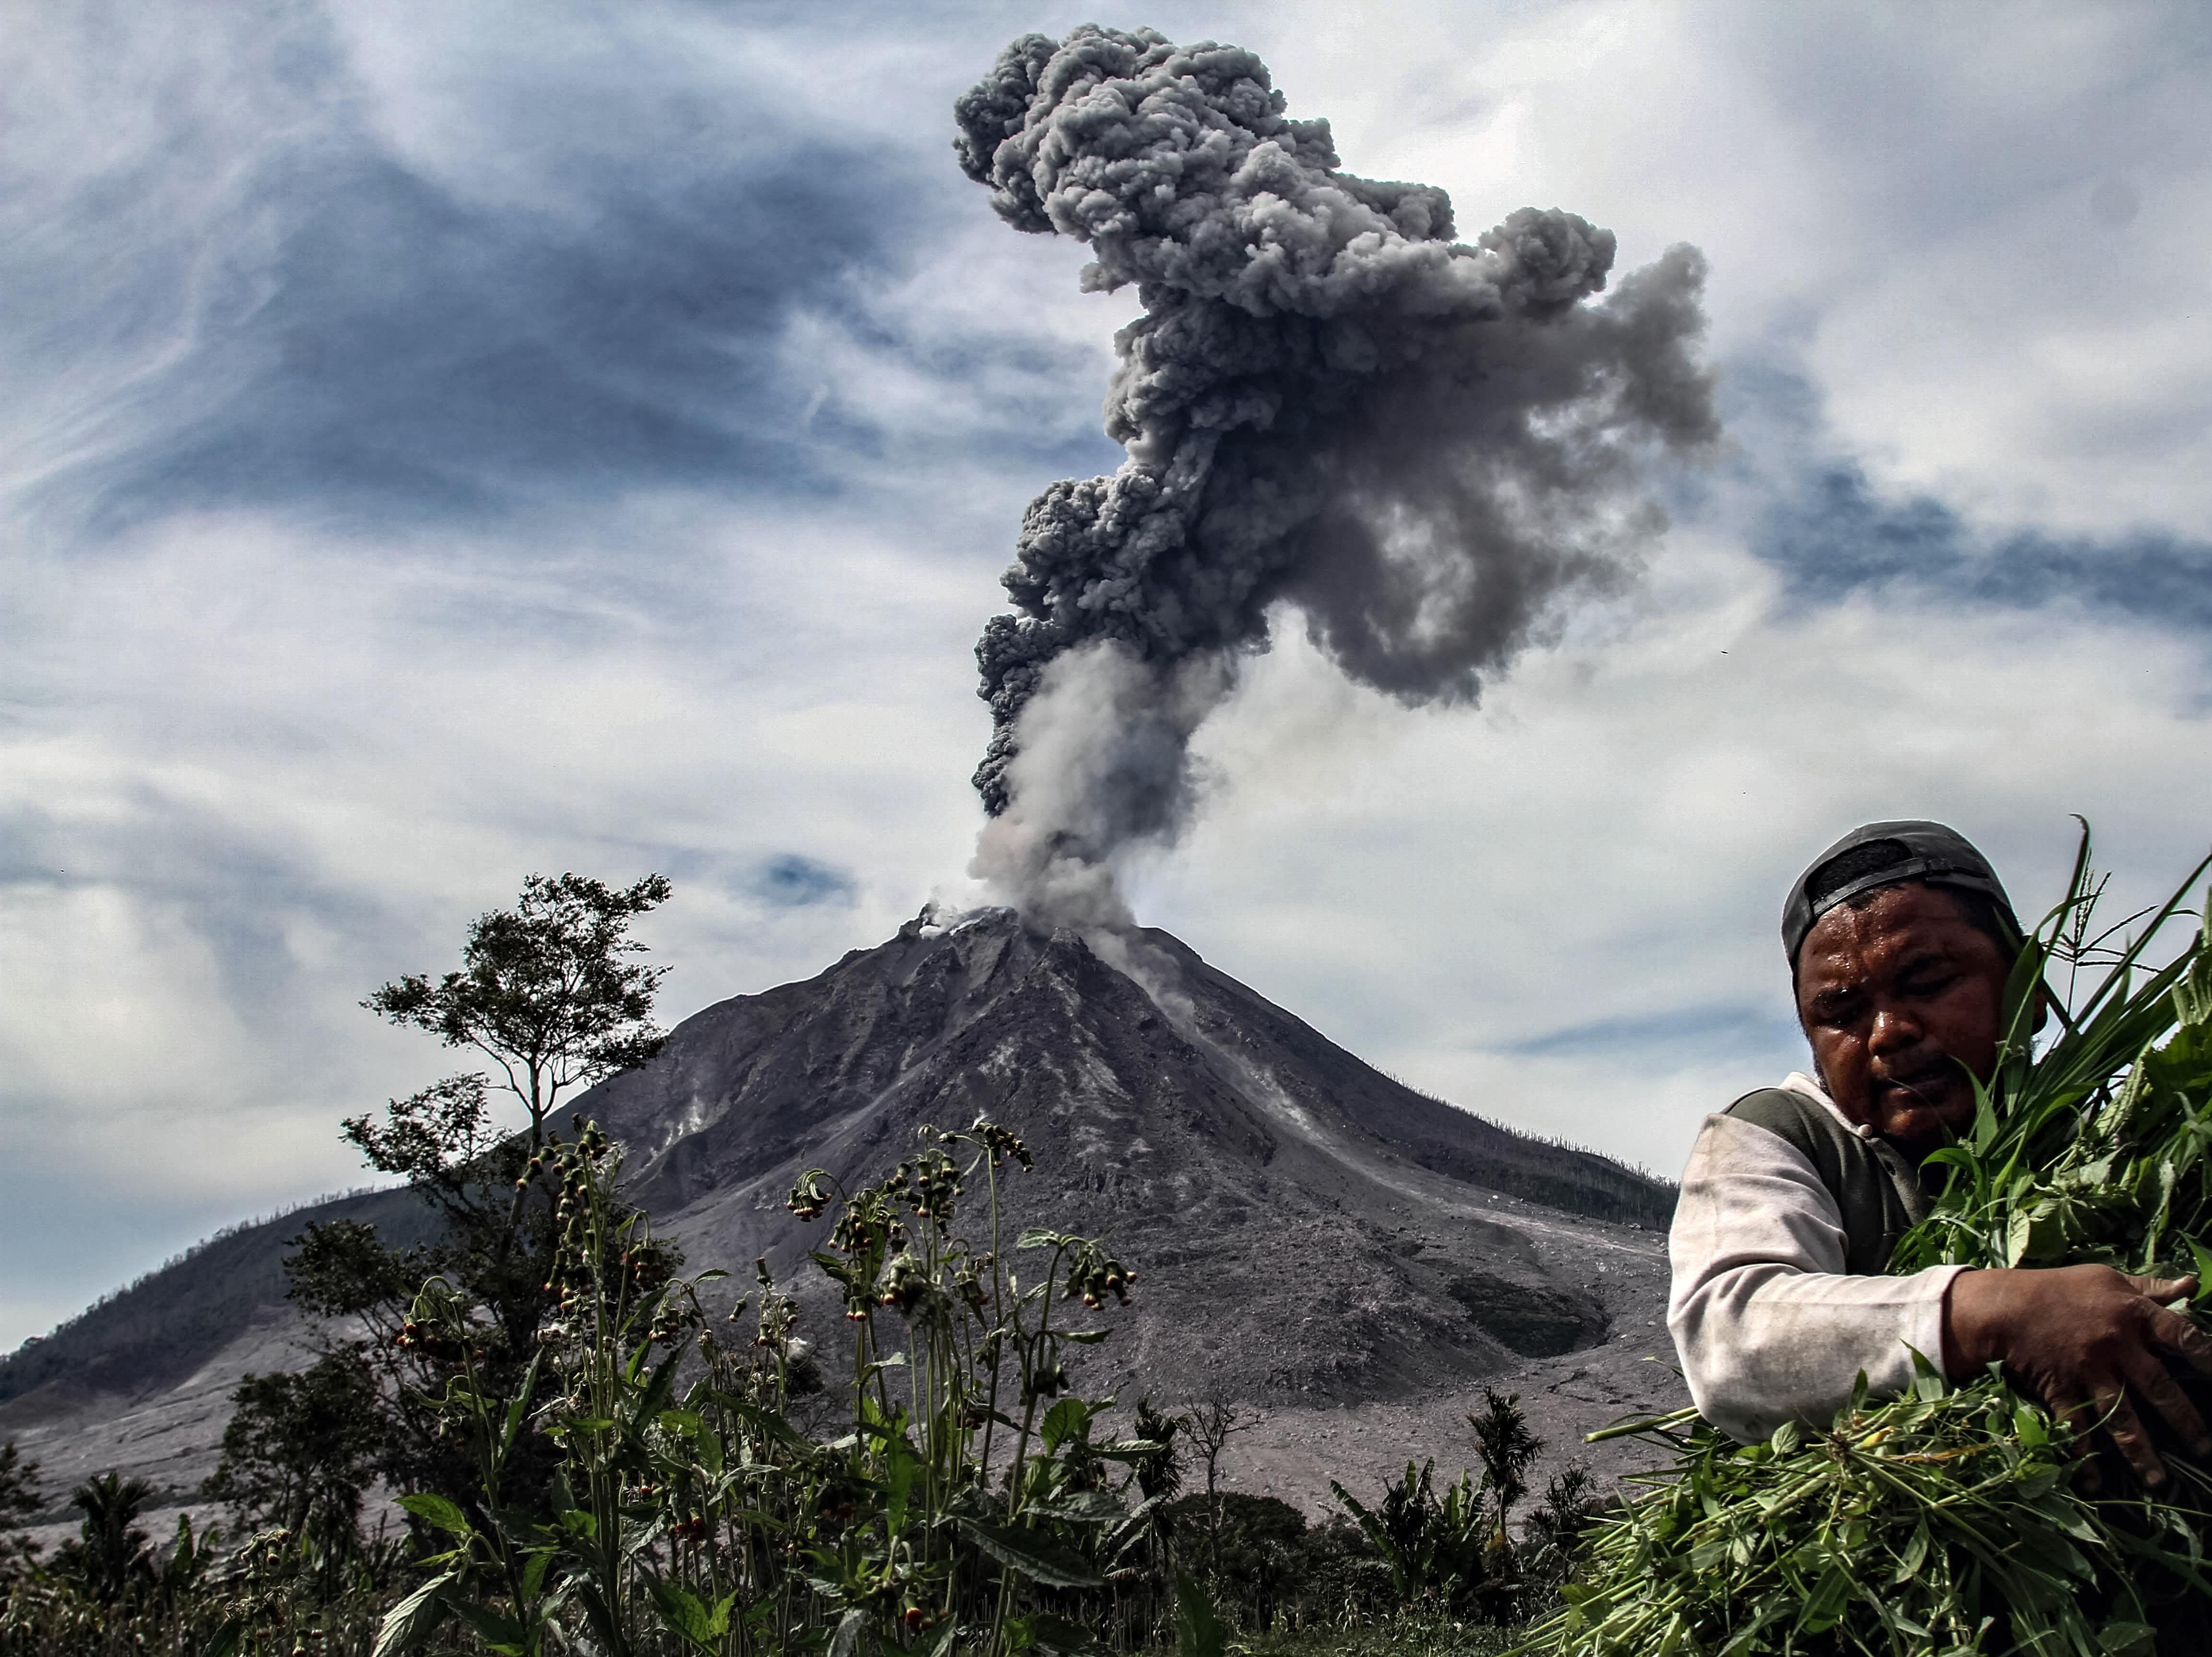 Jan. 6, 2018: A man carries his harvest from his vegetable field, as Mount Sinabung spews thick smoke, in Karo, North Sumatra.